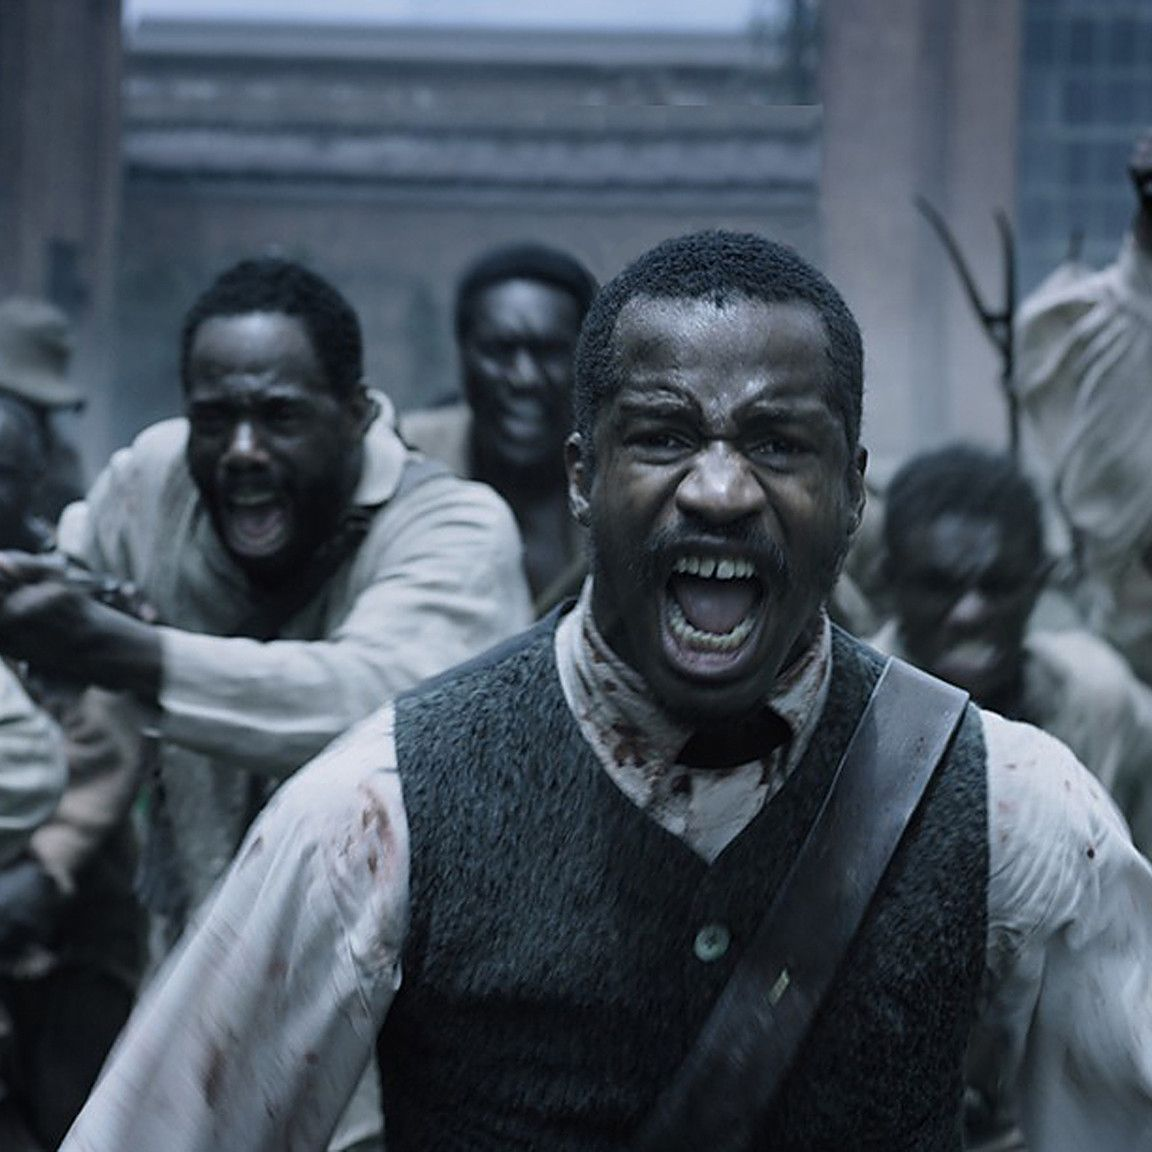 "<p>Based on the true story of&nbsp&#x3B;Nat Turner's 1831 slave rebellion in Virginia, <em data-redactor-tag=""em"" data-verified=""redactor"">The&nbsp&#x3B;</em><i data-redactor-tag=""i"">Birth of a Nation</i>&nbsp&#x3B;follows a young Turner (Nate Parker) as he trains to become a preacher, ventures across the nation to preach, realizes just how widespread and violent slavery has become&nbsp&#x3B;and ultimately takes action. Armie Hammer, Aja Naomi King, and Gabrielle Union also star in the film, which is the most expensive ever sold at Sundance Film Festival.</p><p>Watch the trailer&nbsp&#x3B;<a href=""https://www.youtube.com/watch?v=i18z1EQCoyg"" target=""_blank"">here</a>.</p>"